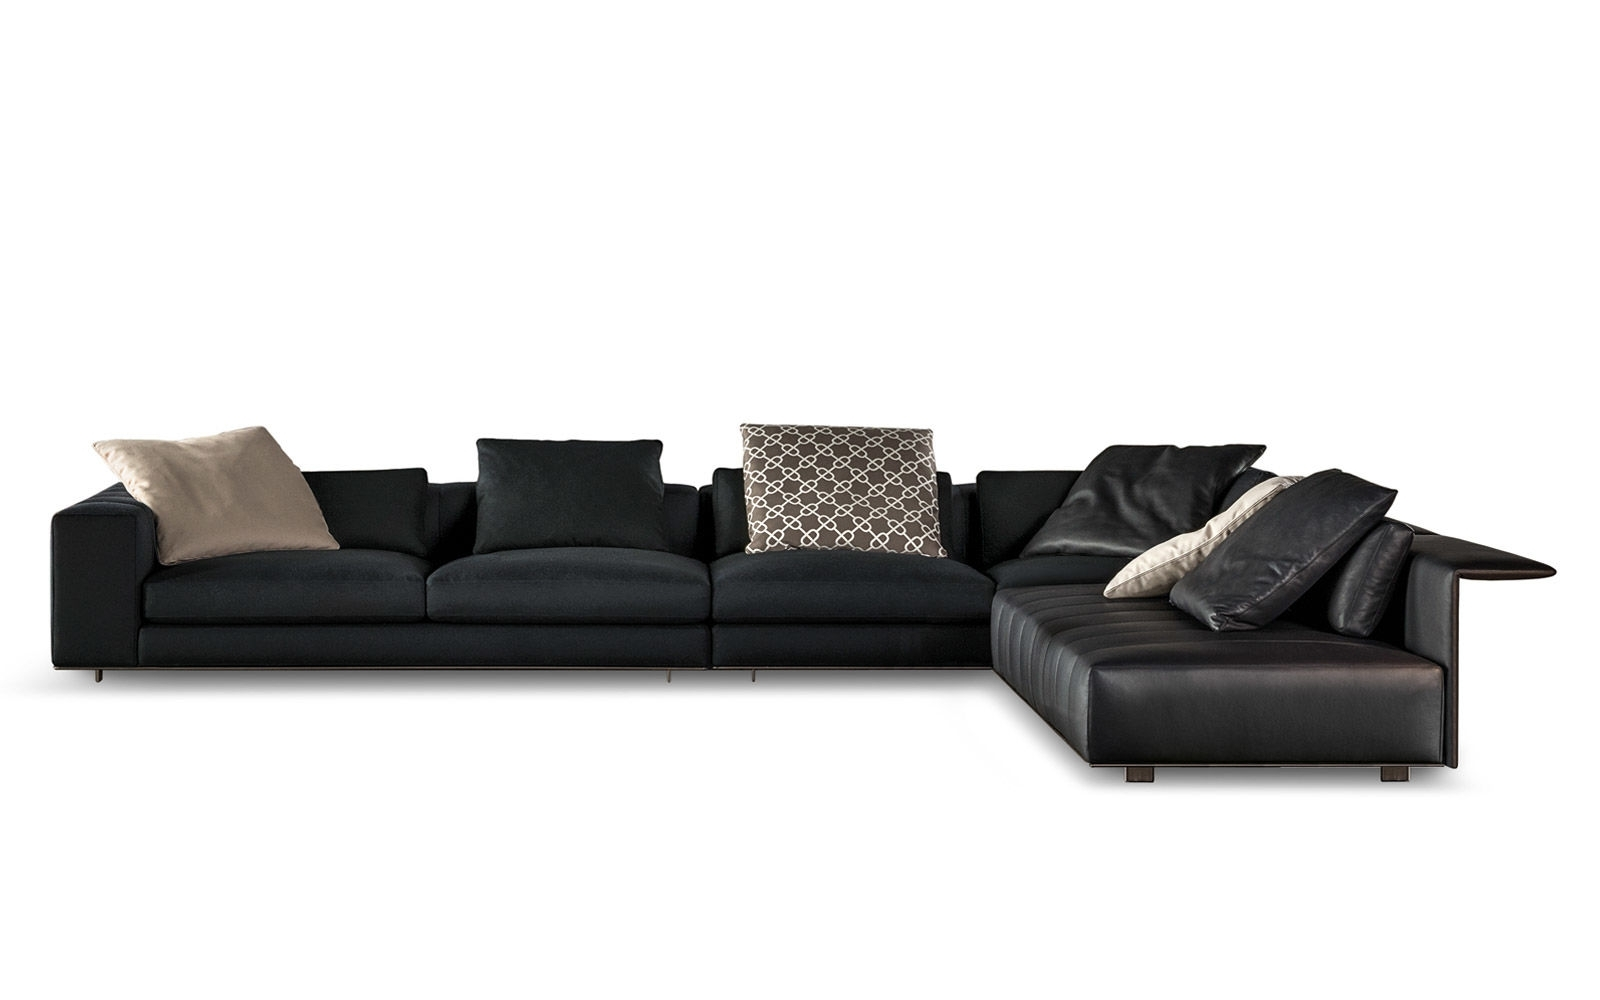 Freeman Seating System   Sofas – En Intended For Calder Grey 6 Piece Manual Reclining Sectionals (Image 12 of 25)